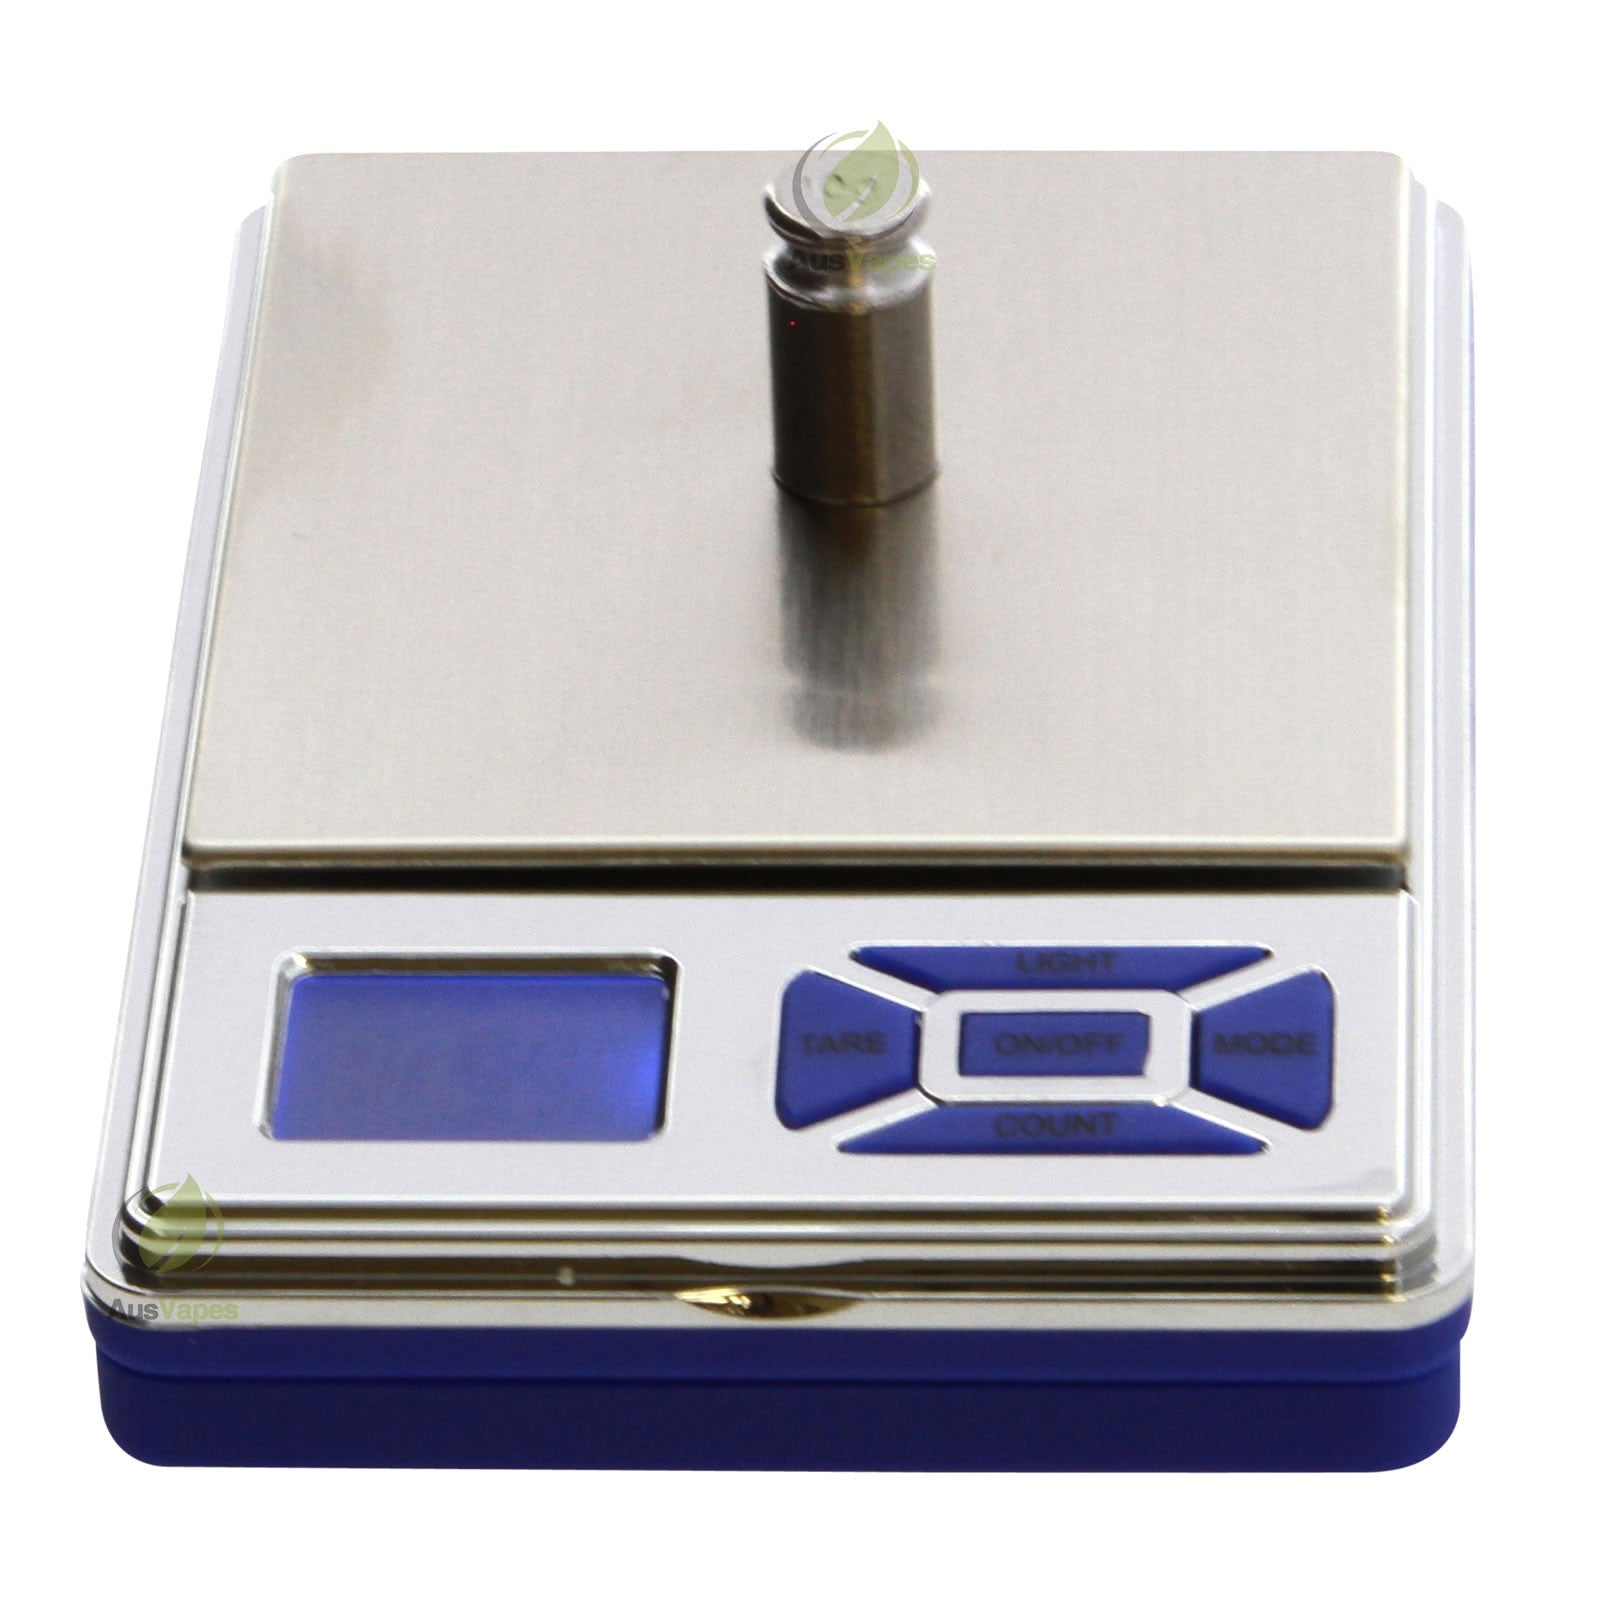 DISCONTINUED Infyniti Executive Digital Pocket Scale 50g x 0.01g